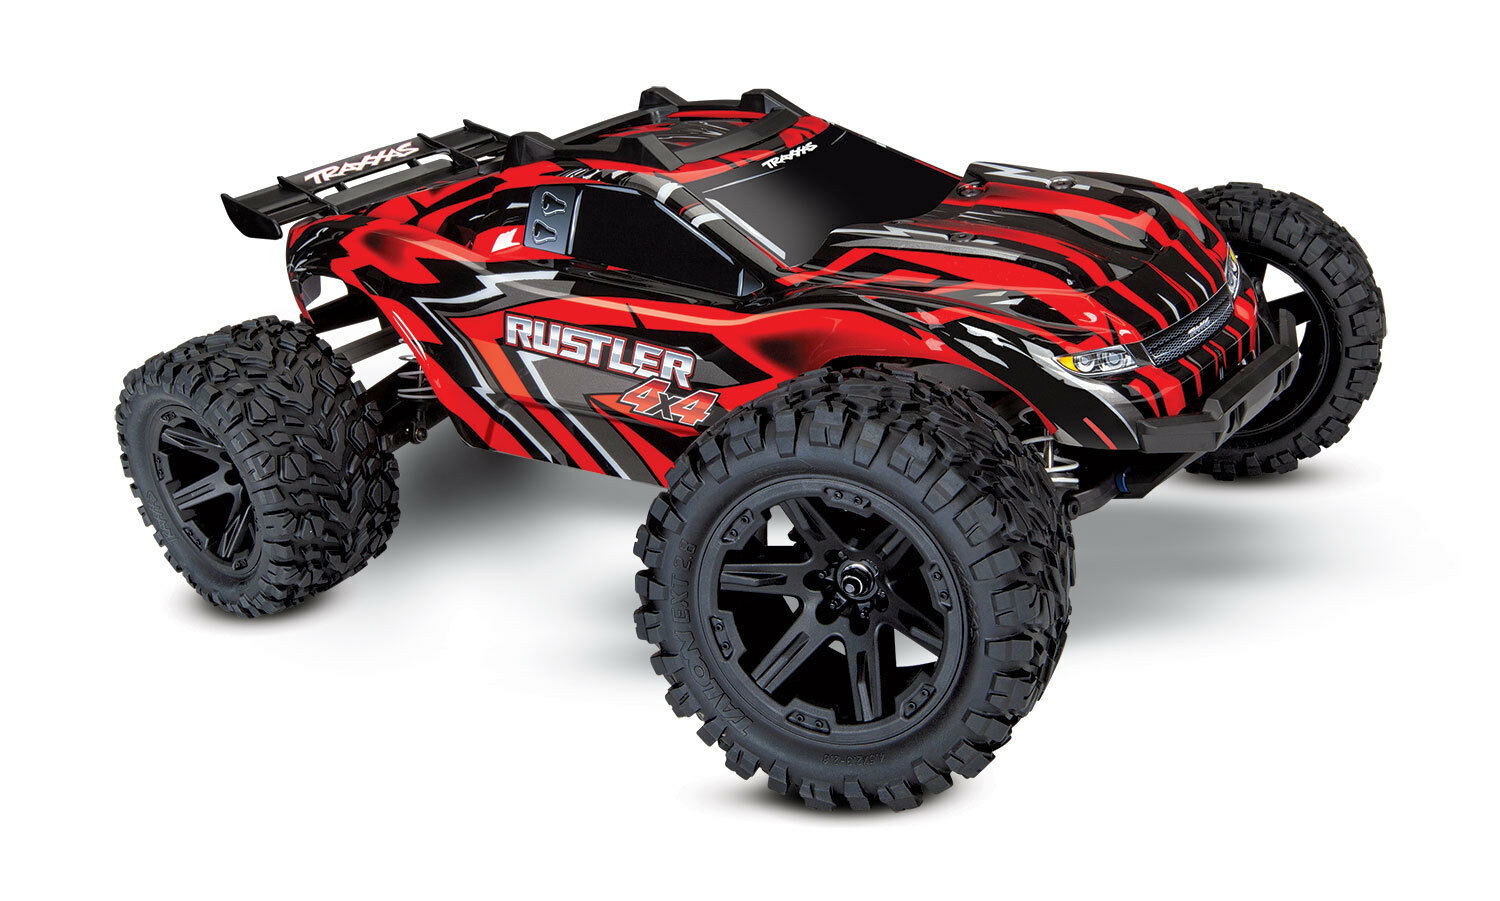 TRAXXAS 67064-1 R RUSTLER Model car Electrical 4x4 Brushed Red